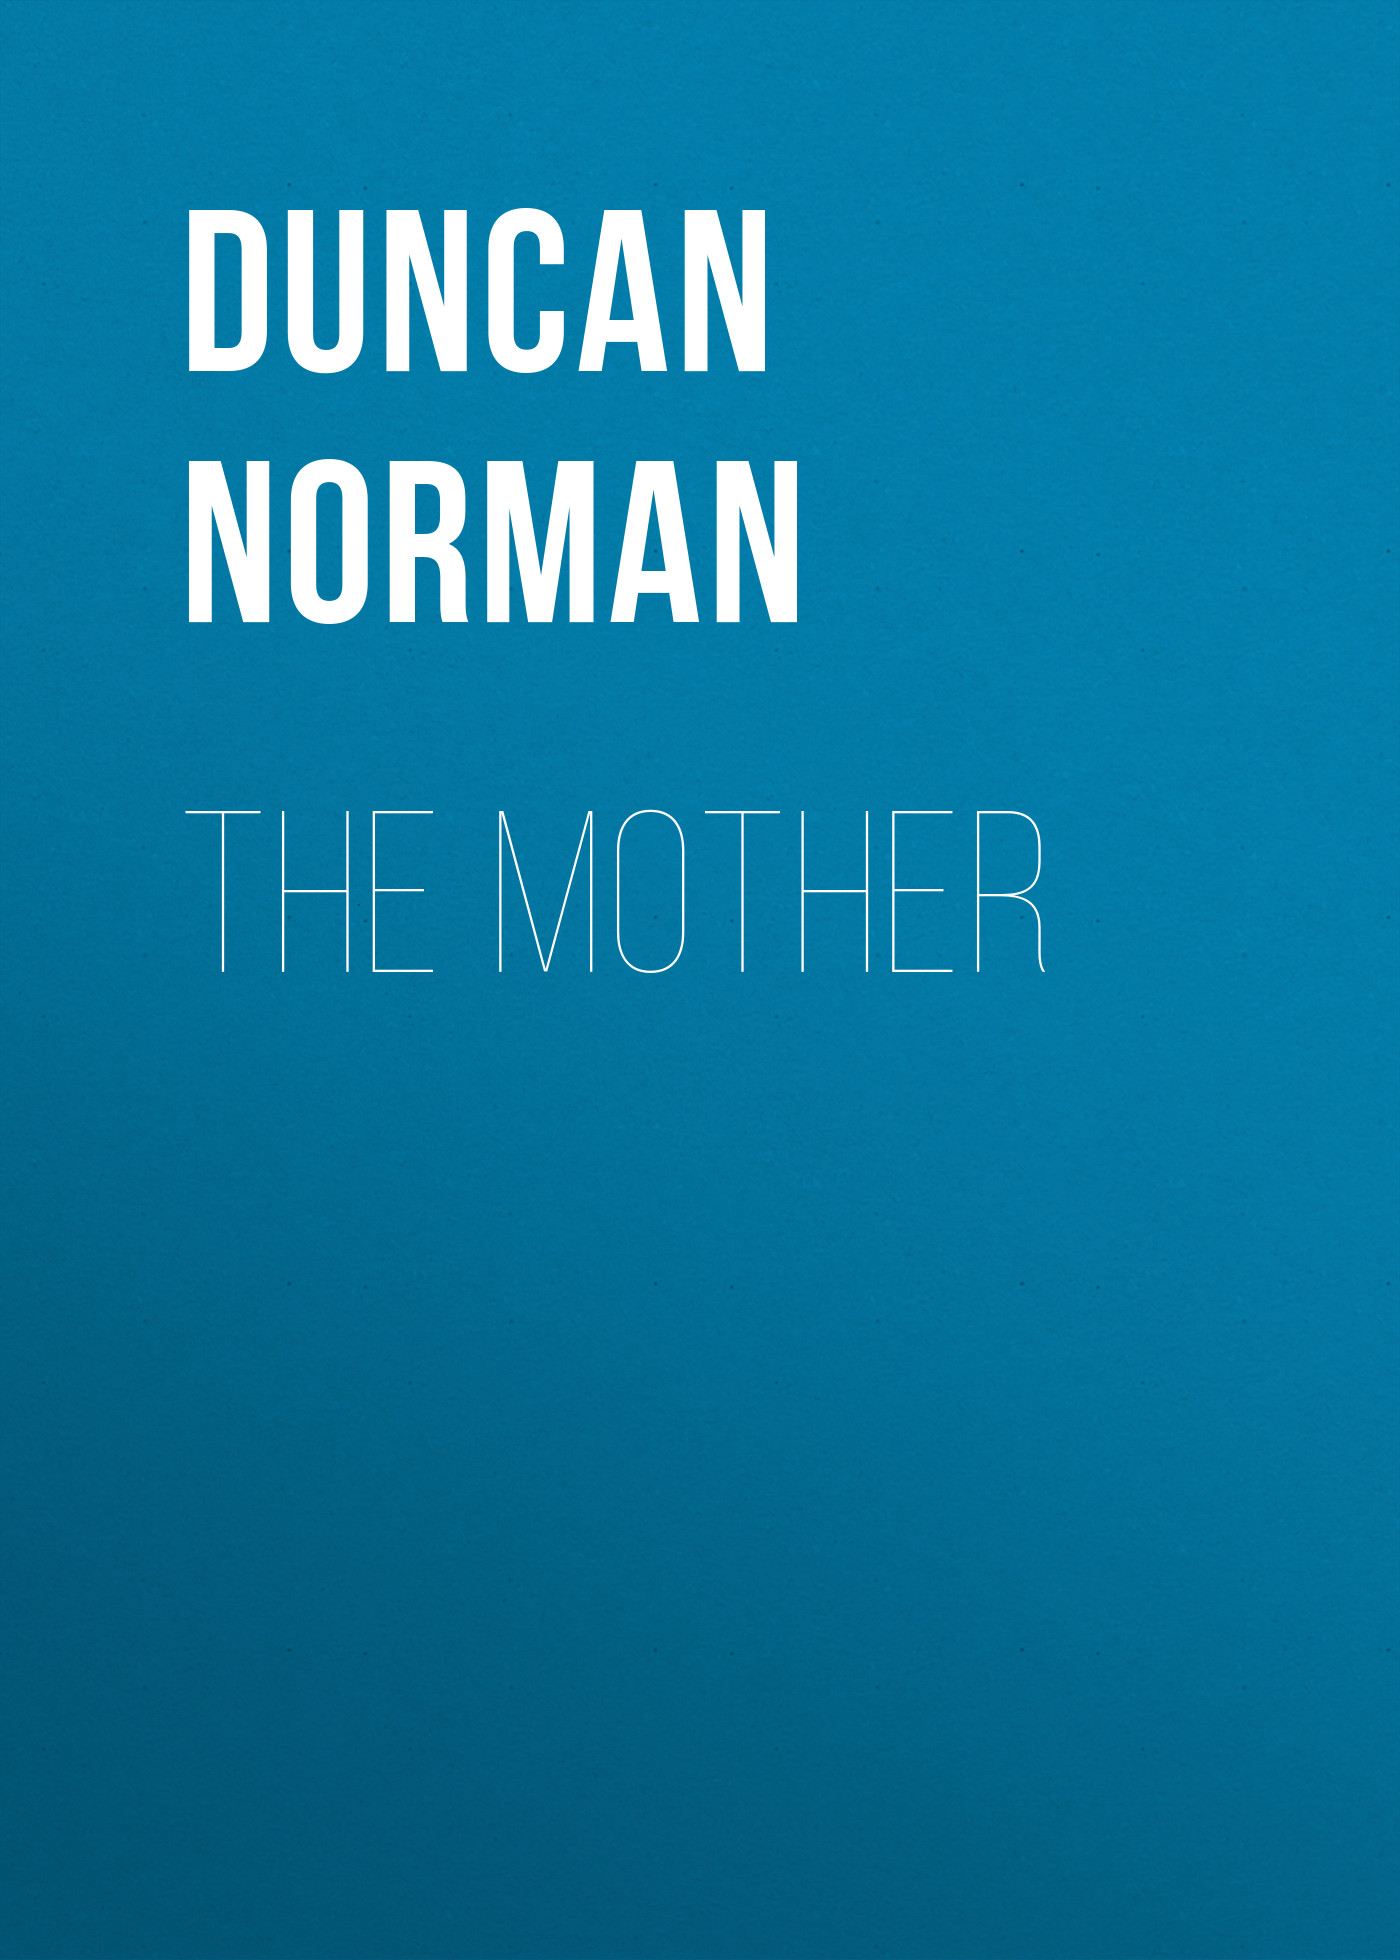 Duncan Norman The Mother diana duncan bulletproof bride